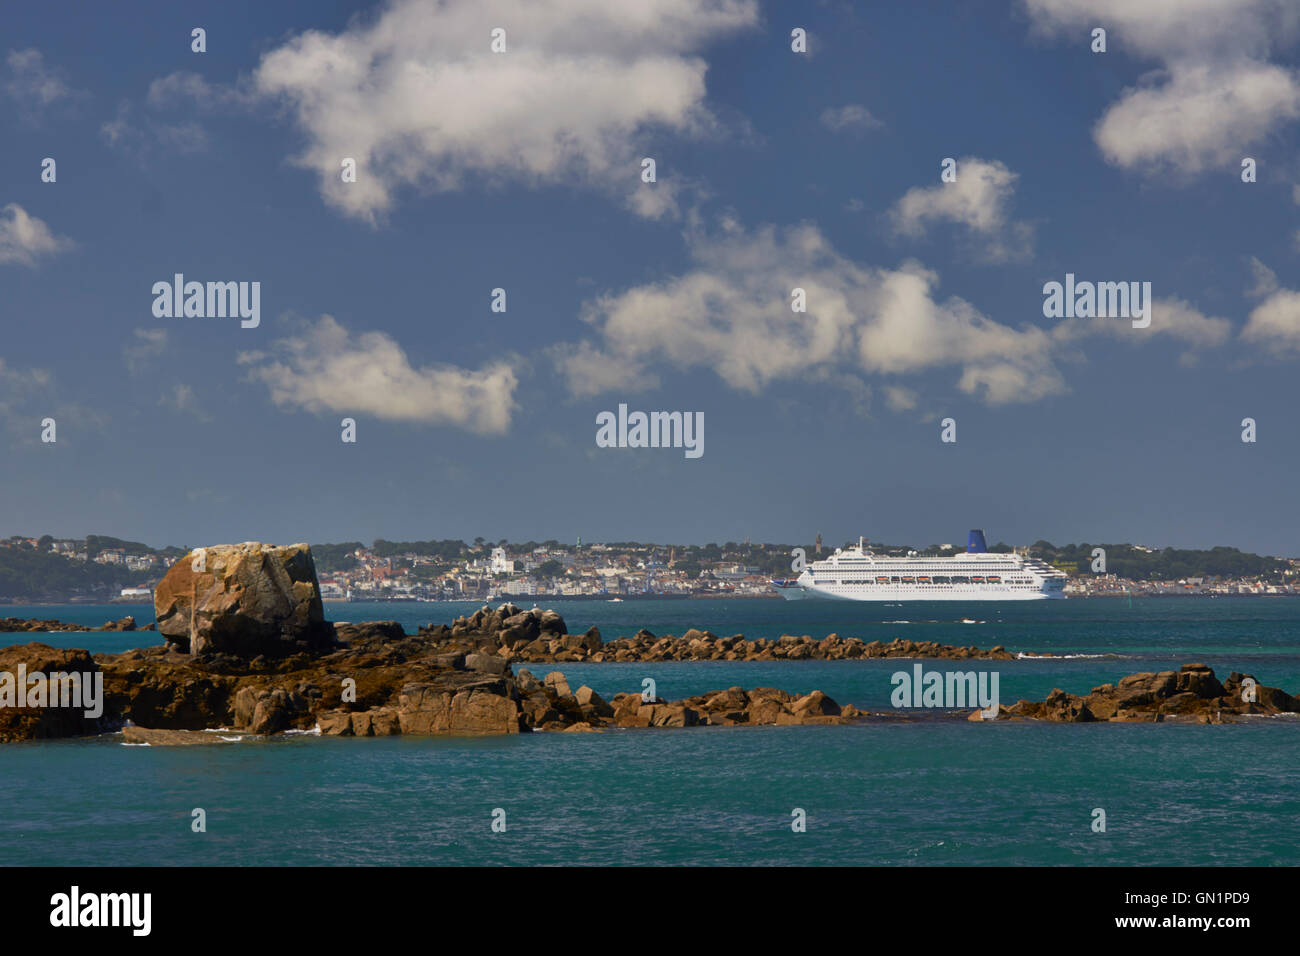 Cruise liners at anchor off St Peter Port Harbour,  P&O Oriana - Stock Image